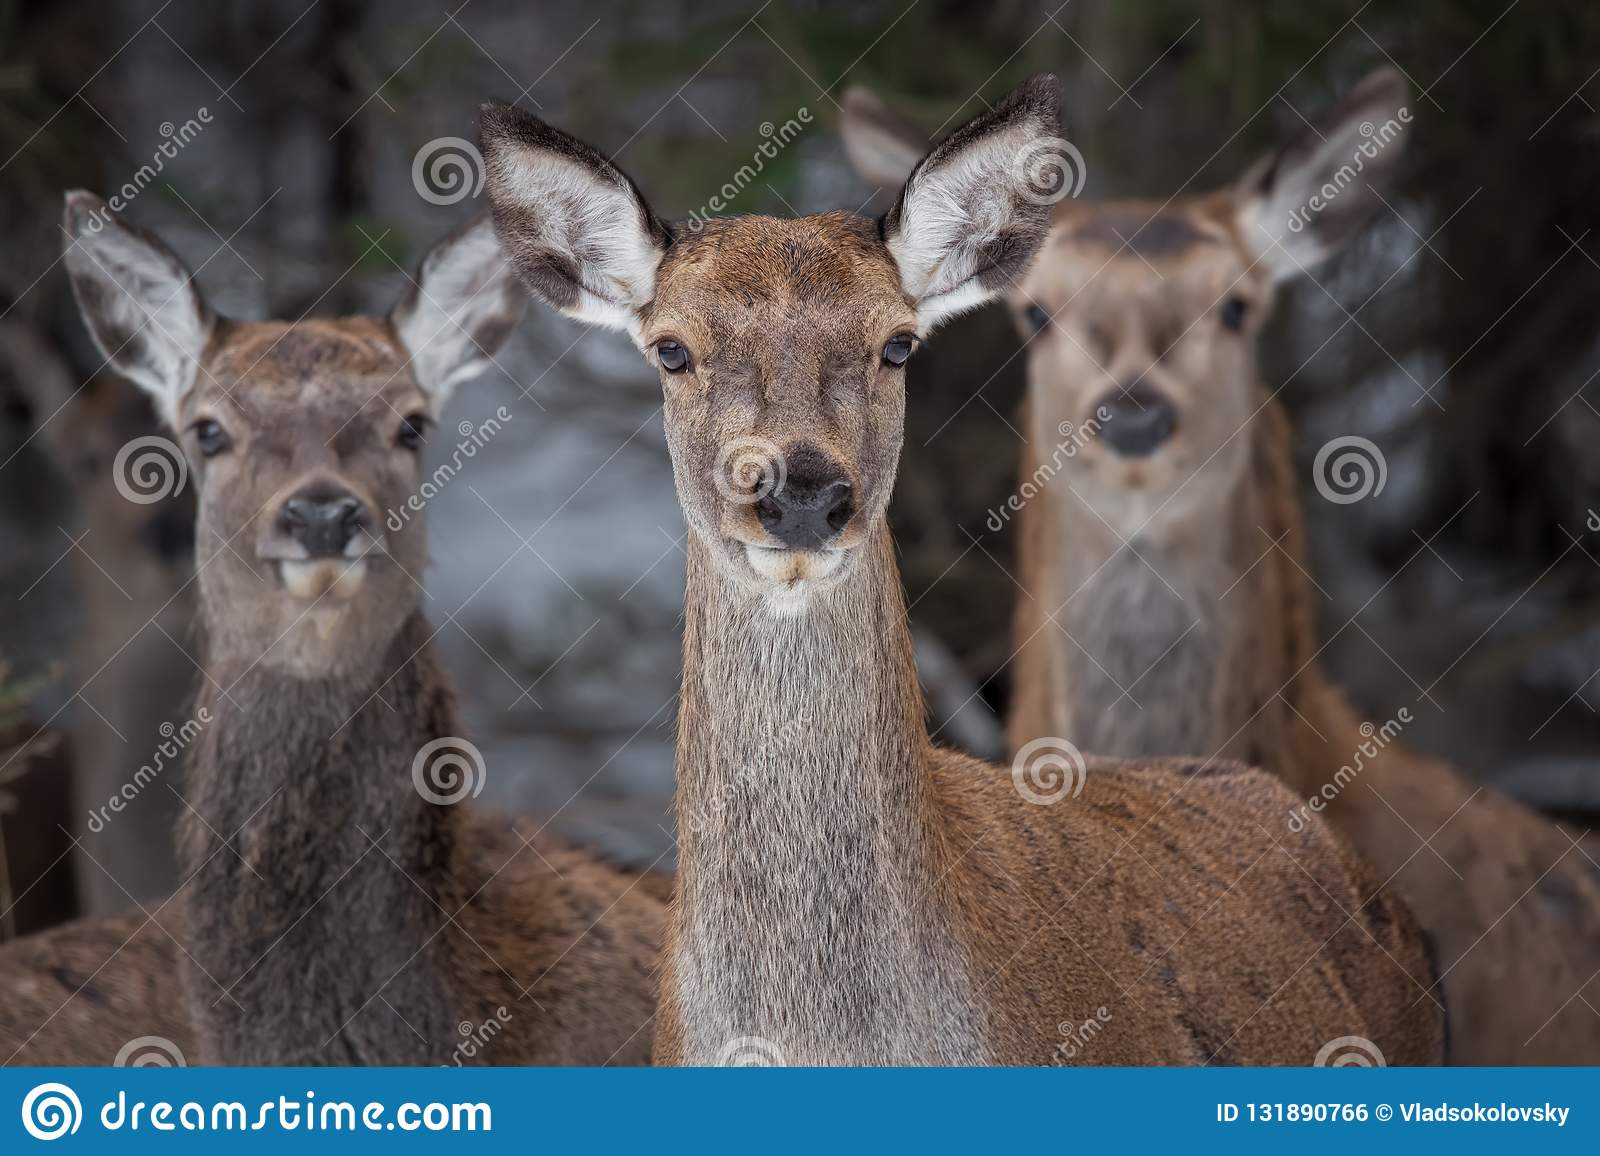 Great Trio: Three Curious Females Of The Red Deer Cervidae, Cervus Elaphus Are Looking Directly At You, Selective Focus On The